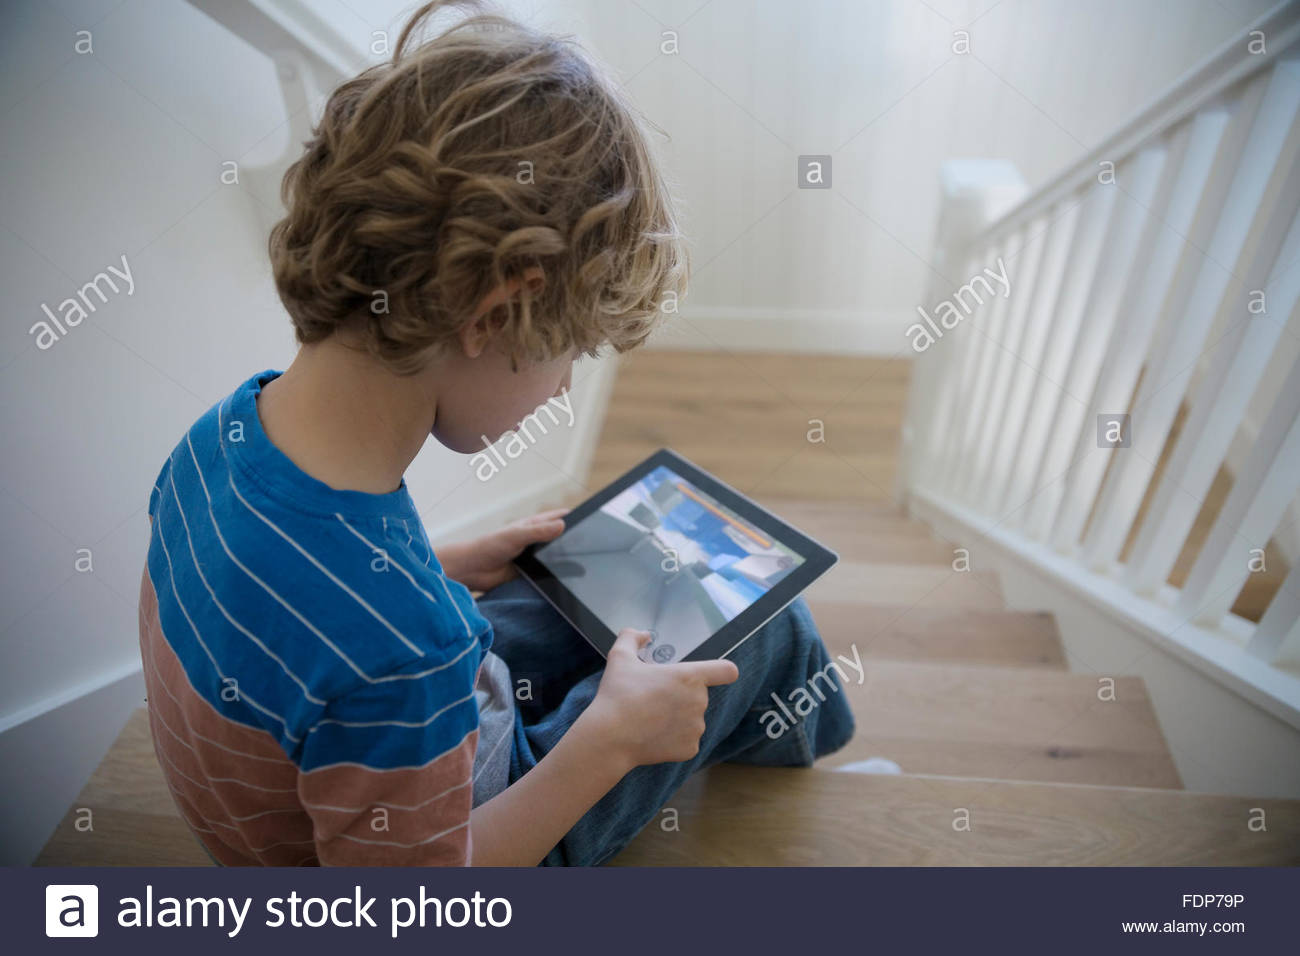 Boy using digital tablet sitting on staircase - Stock Image